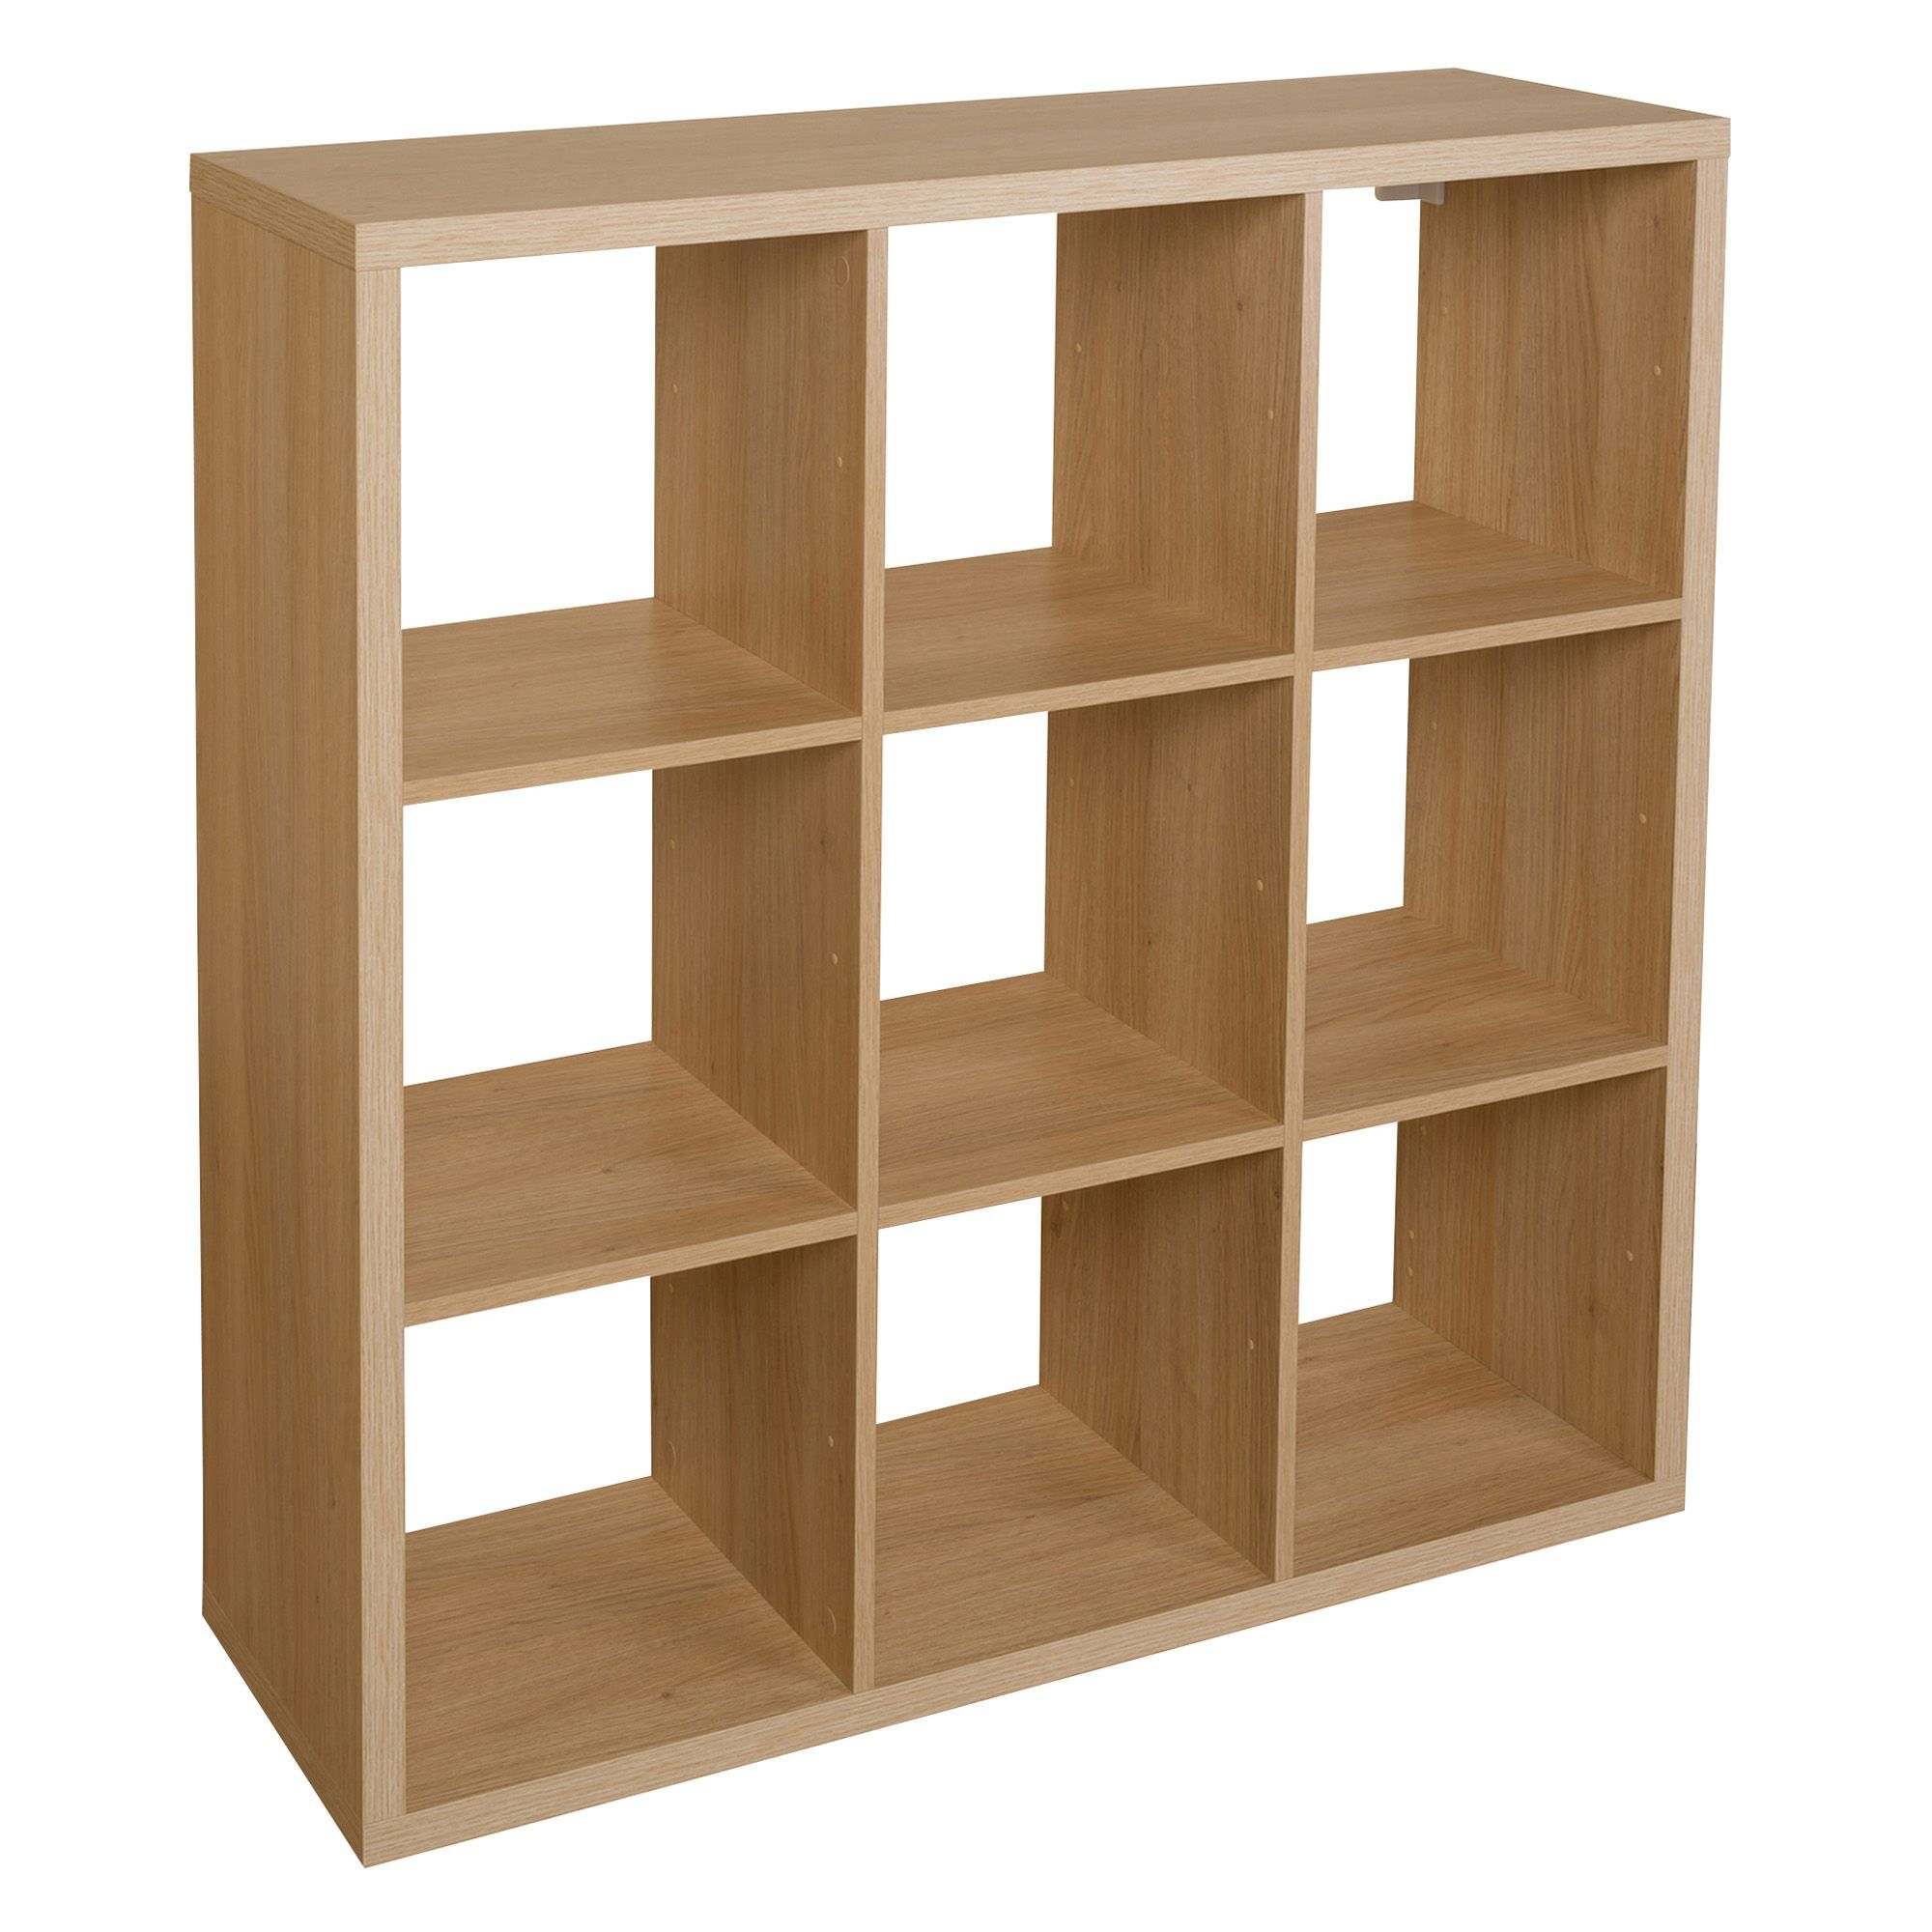 Form Mixxit Oak Effect 9 Cube Shelving Unit (H)1080mm (W)1080mm